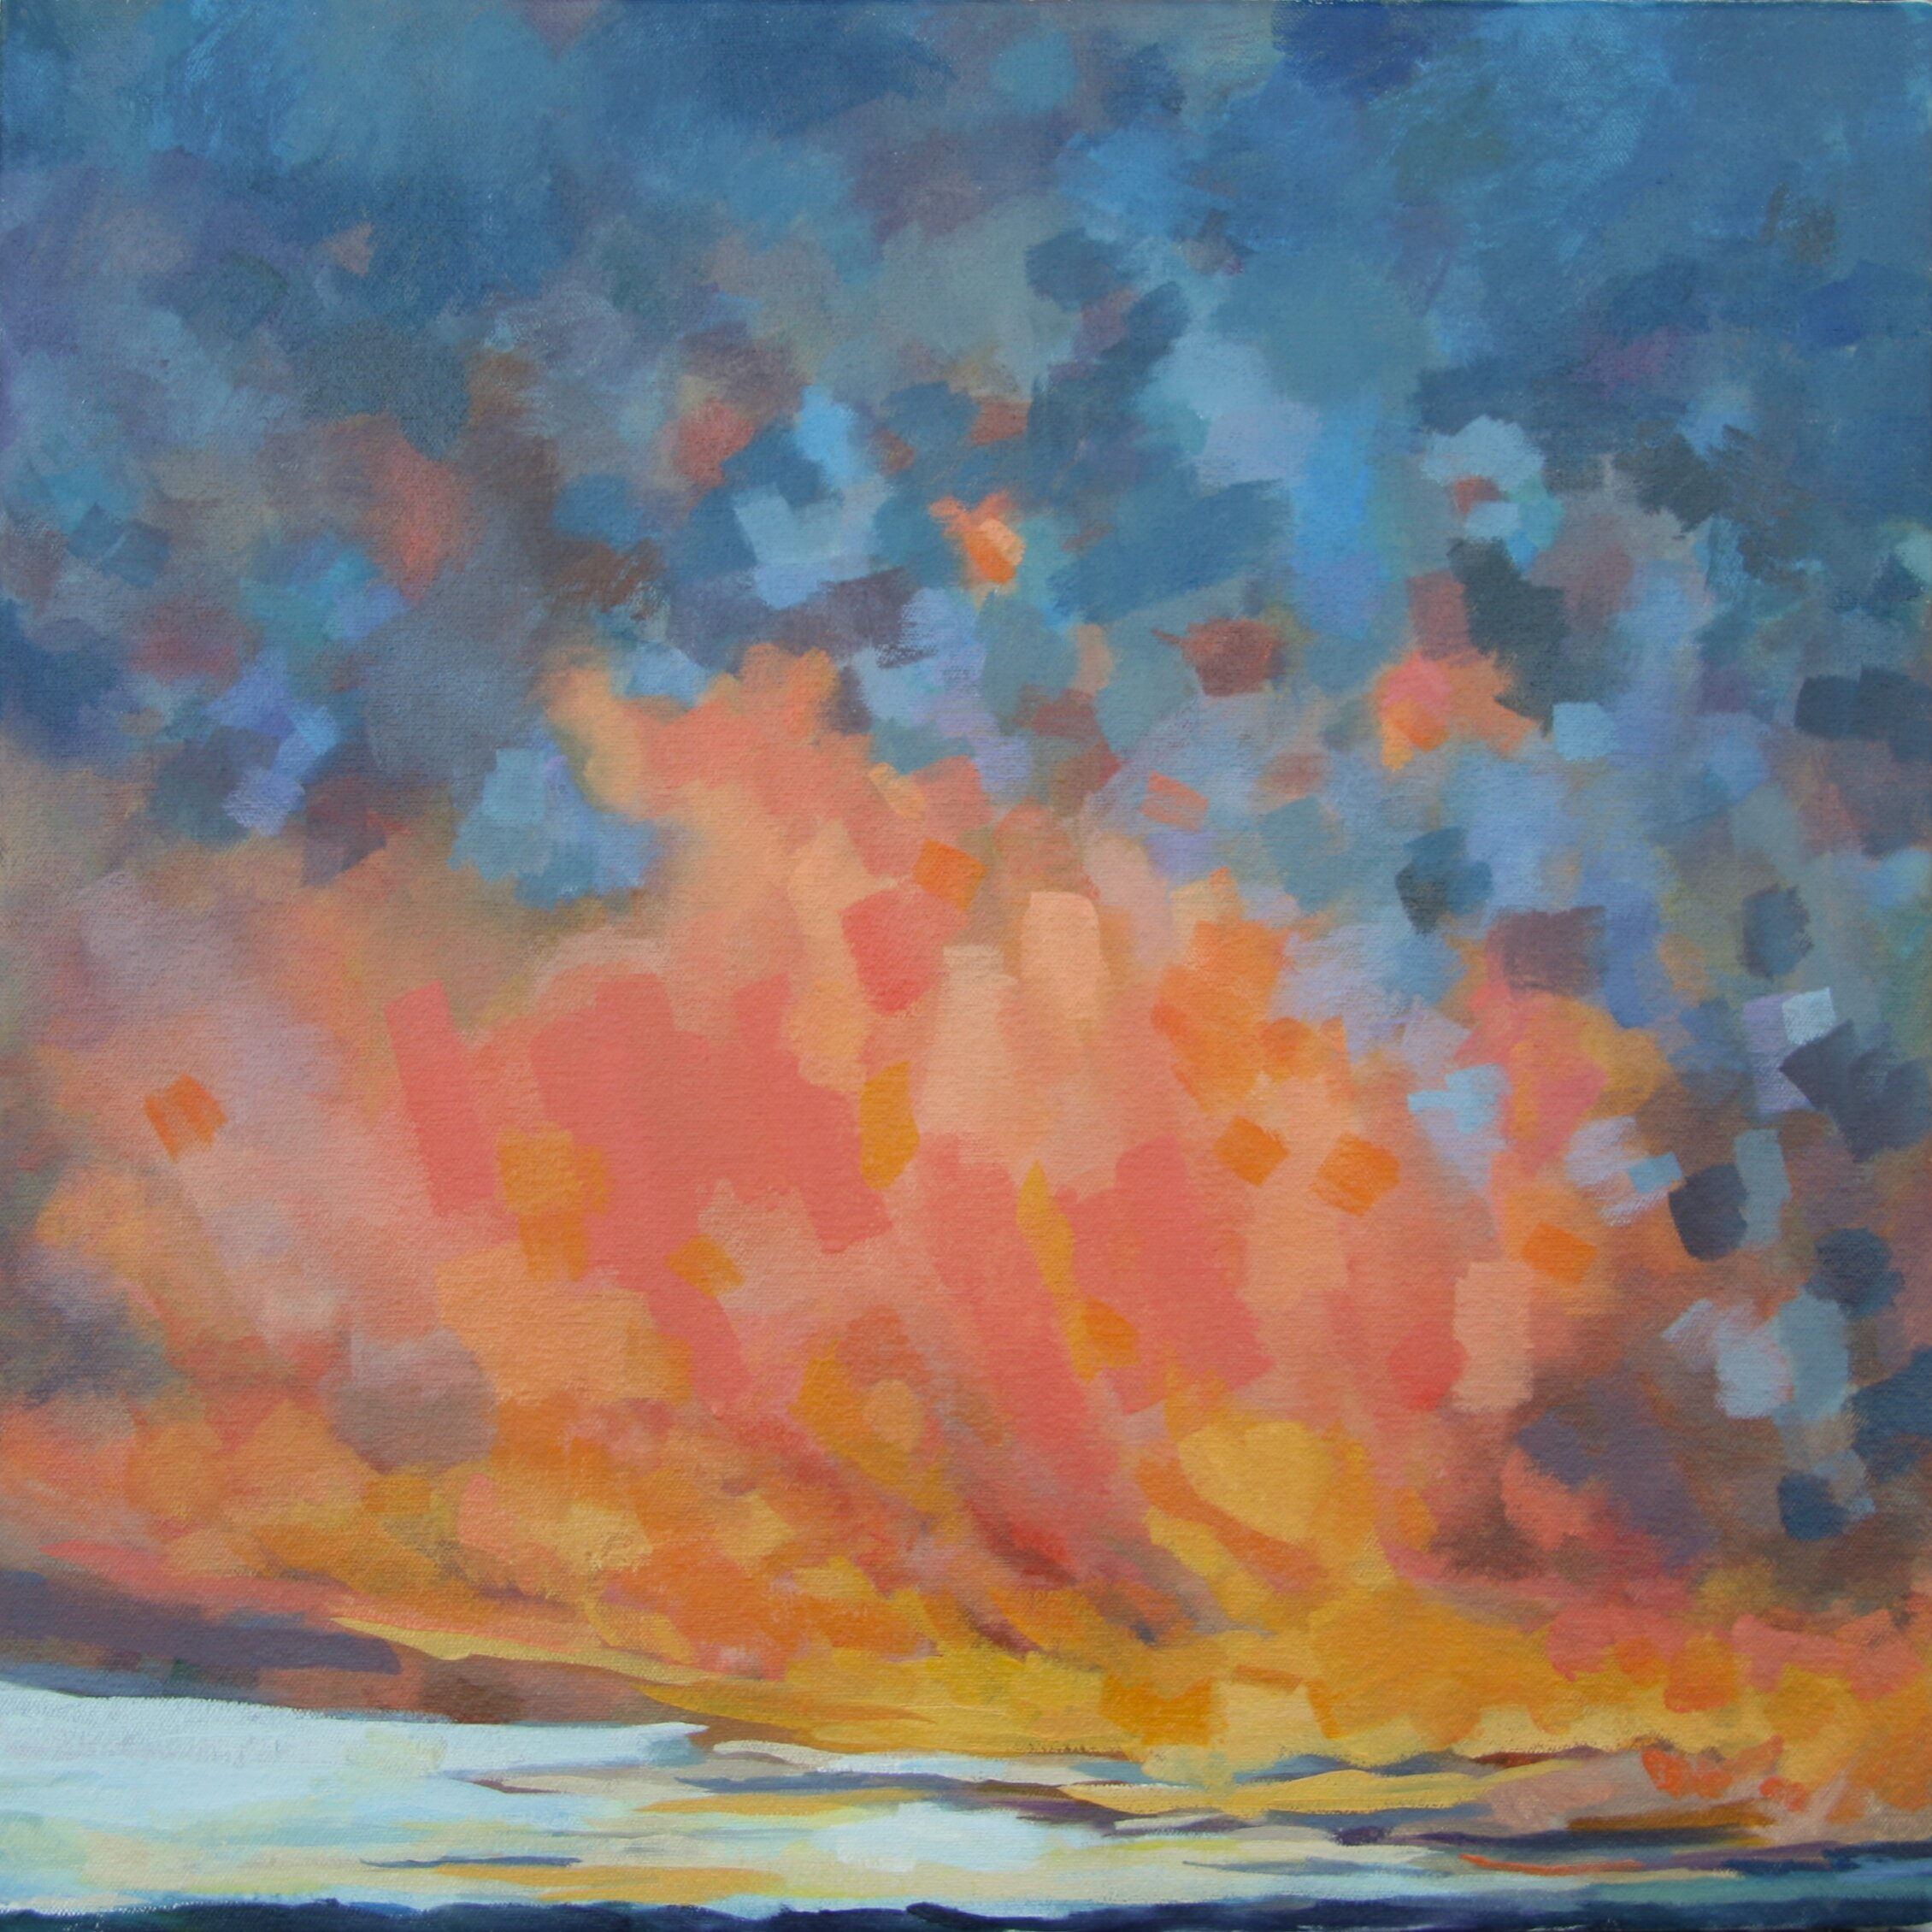 """'Rise'  2015  20"""" x 20""""  water soluble oil on canvas  sold"""